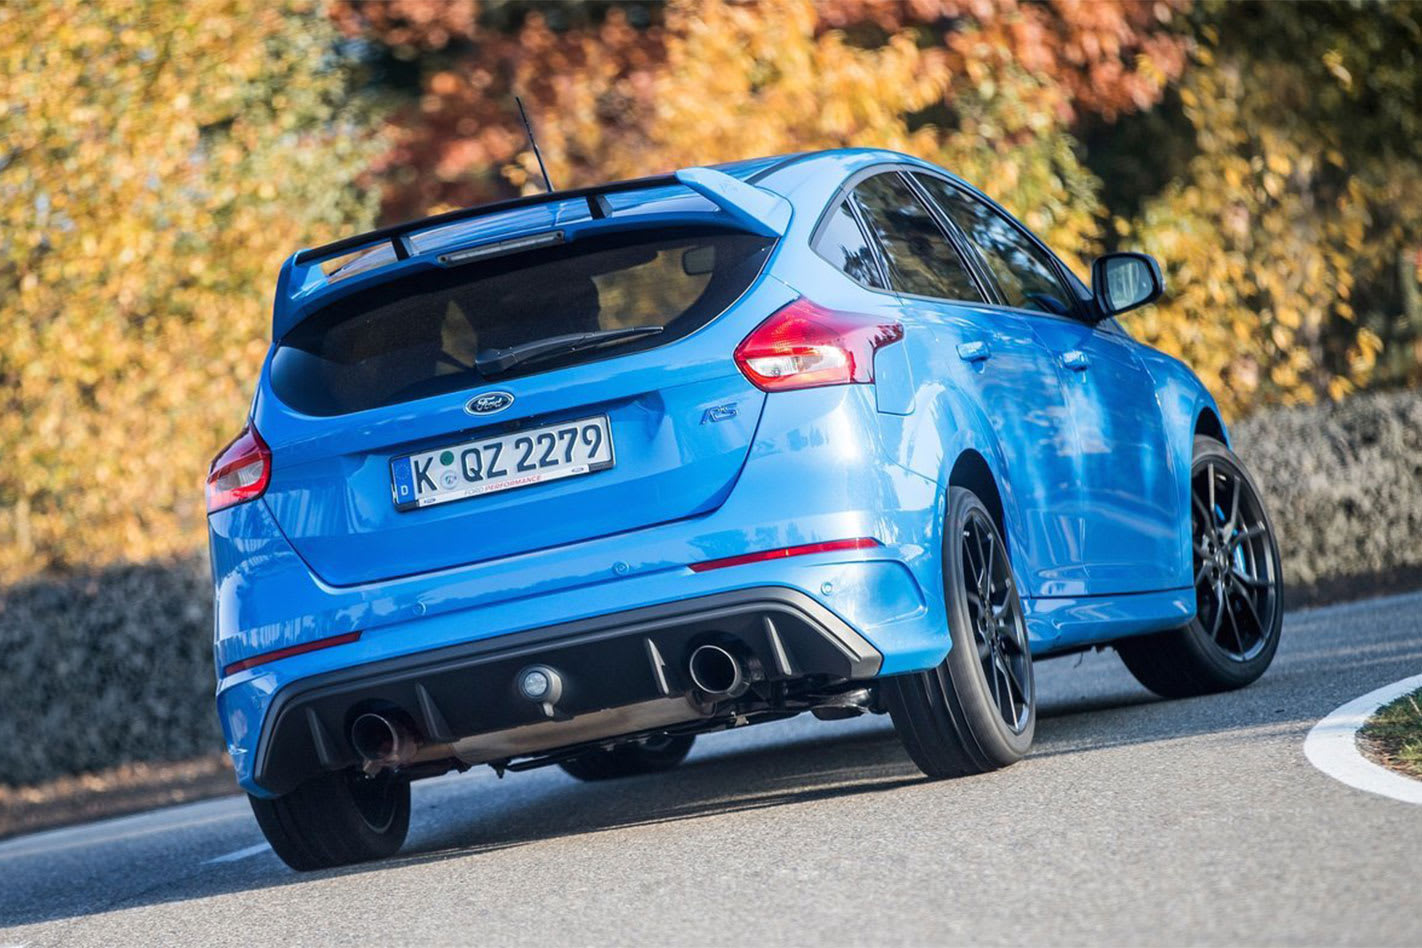 Hotter -Ford -Focus -planned -rear